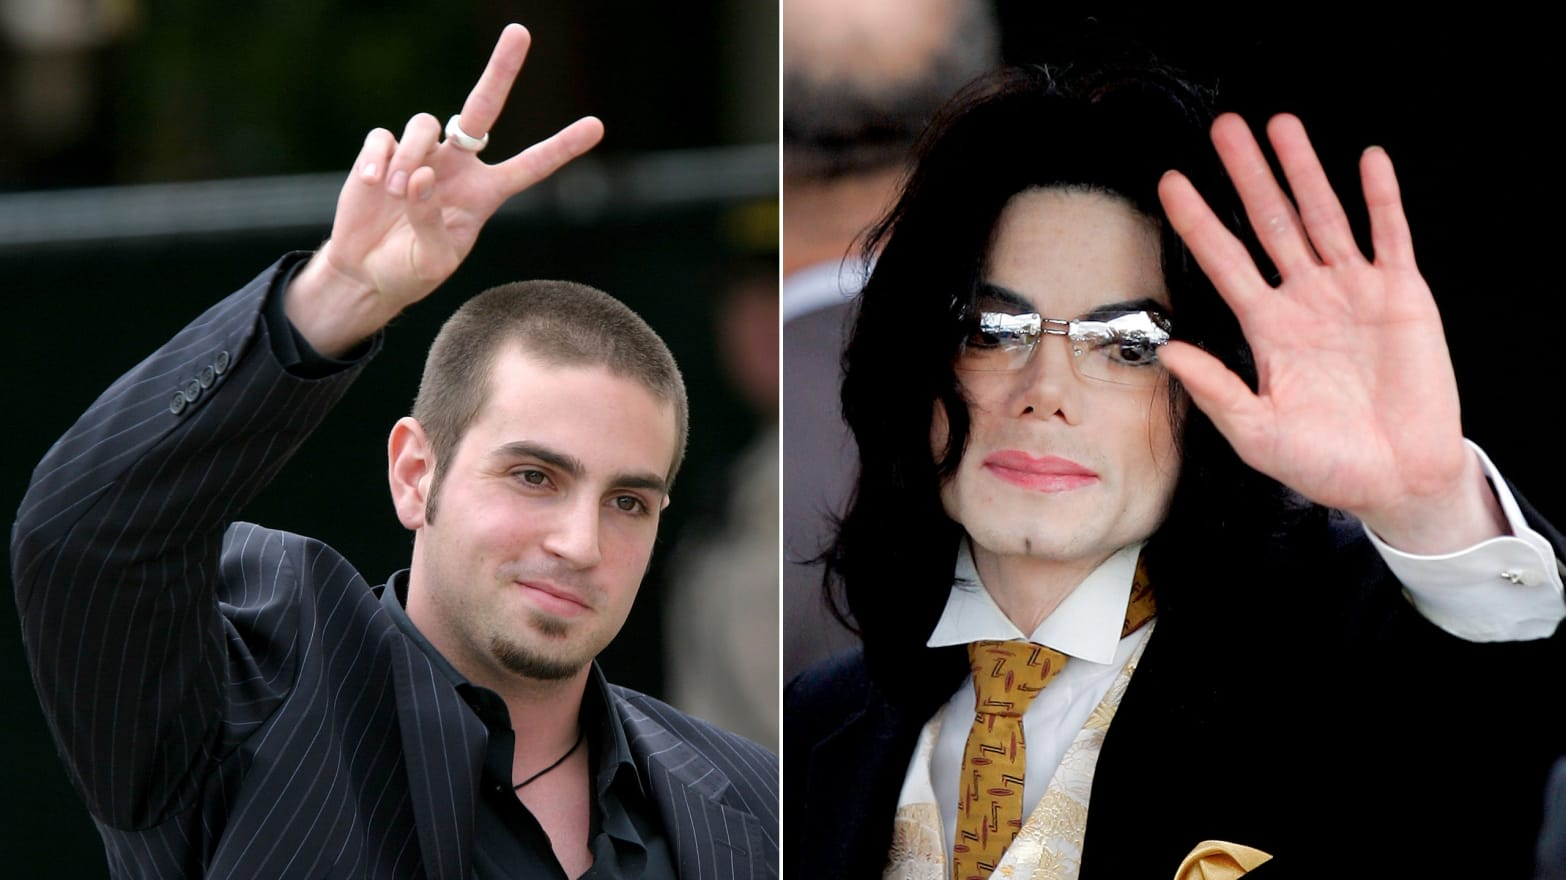 Behind The Michael Jackson Bombshell How A Staunch Defender